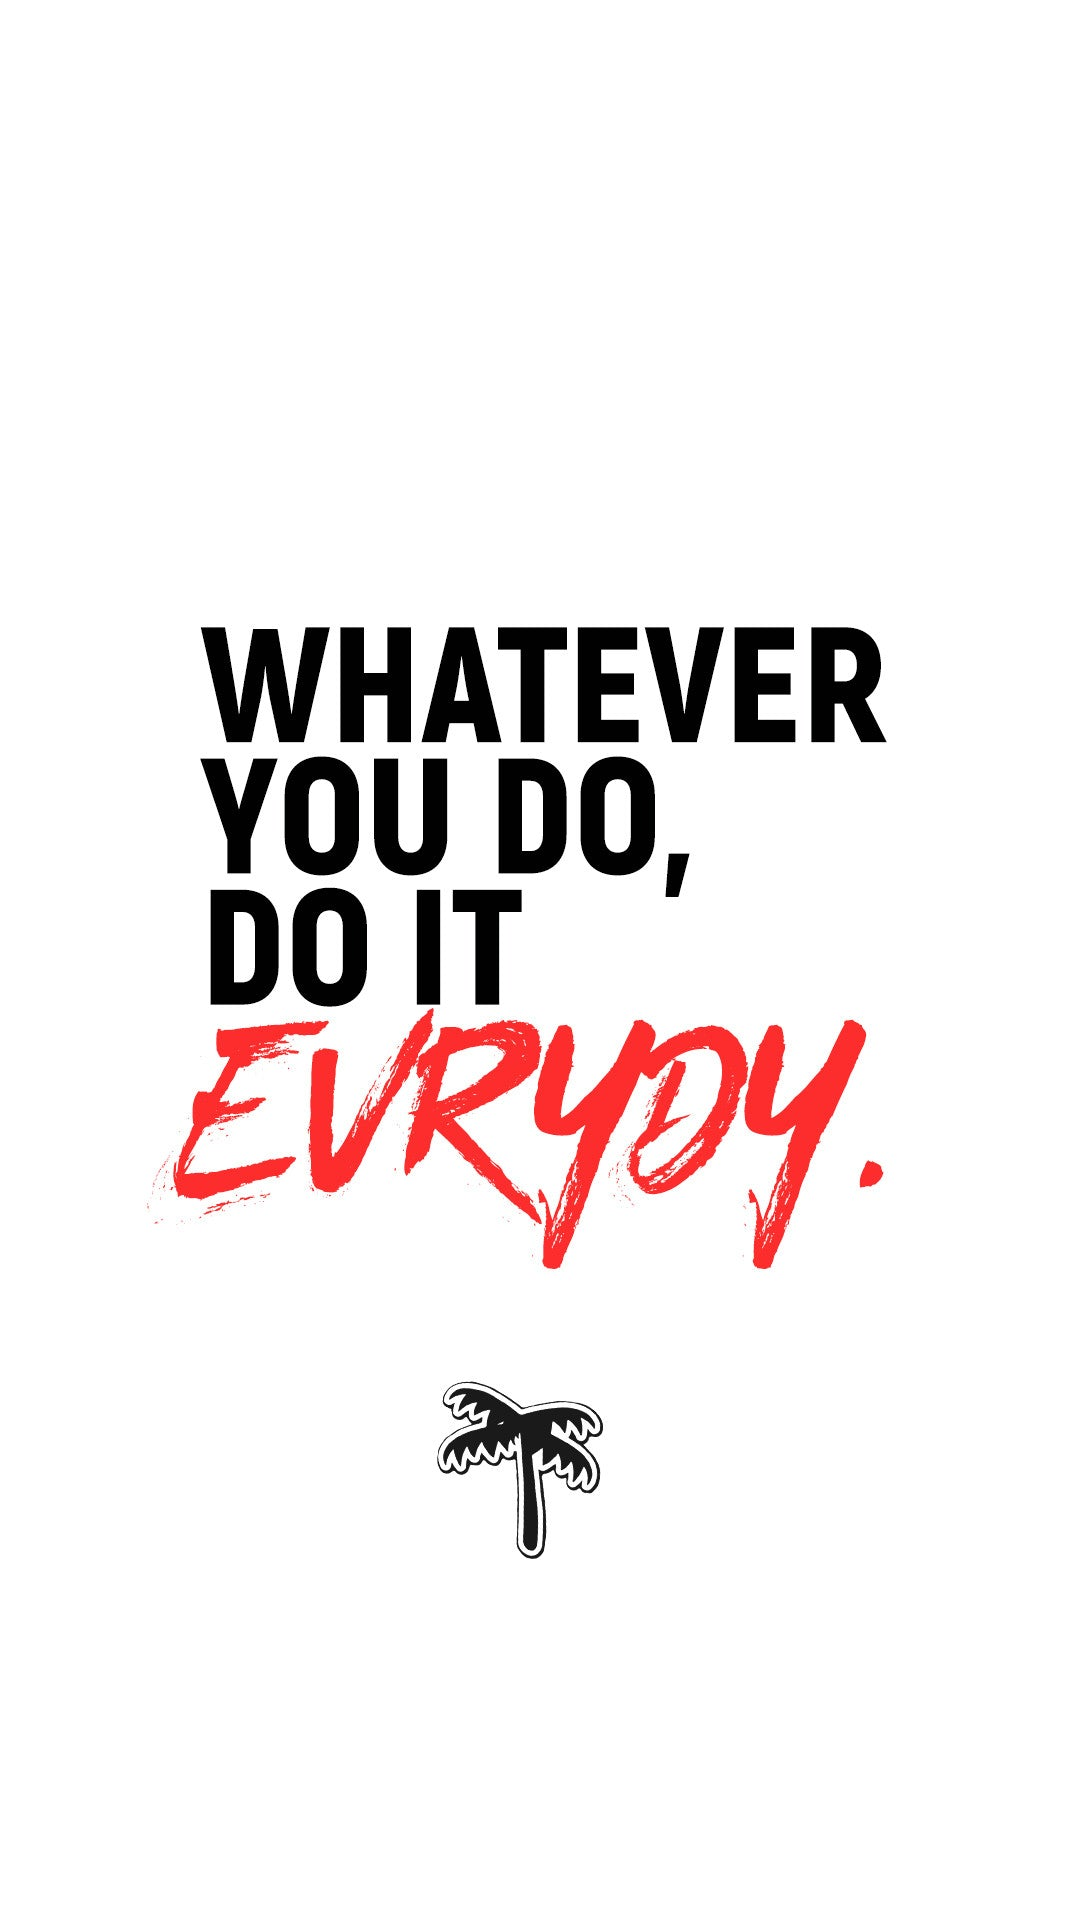 Whatever you do, do it everyday - evrydy